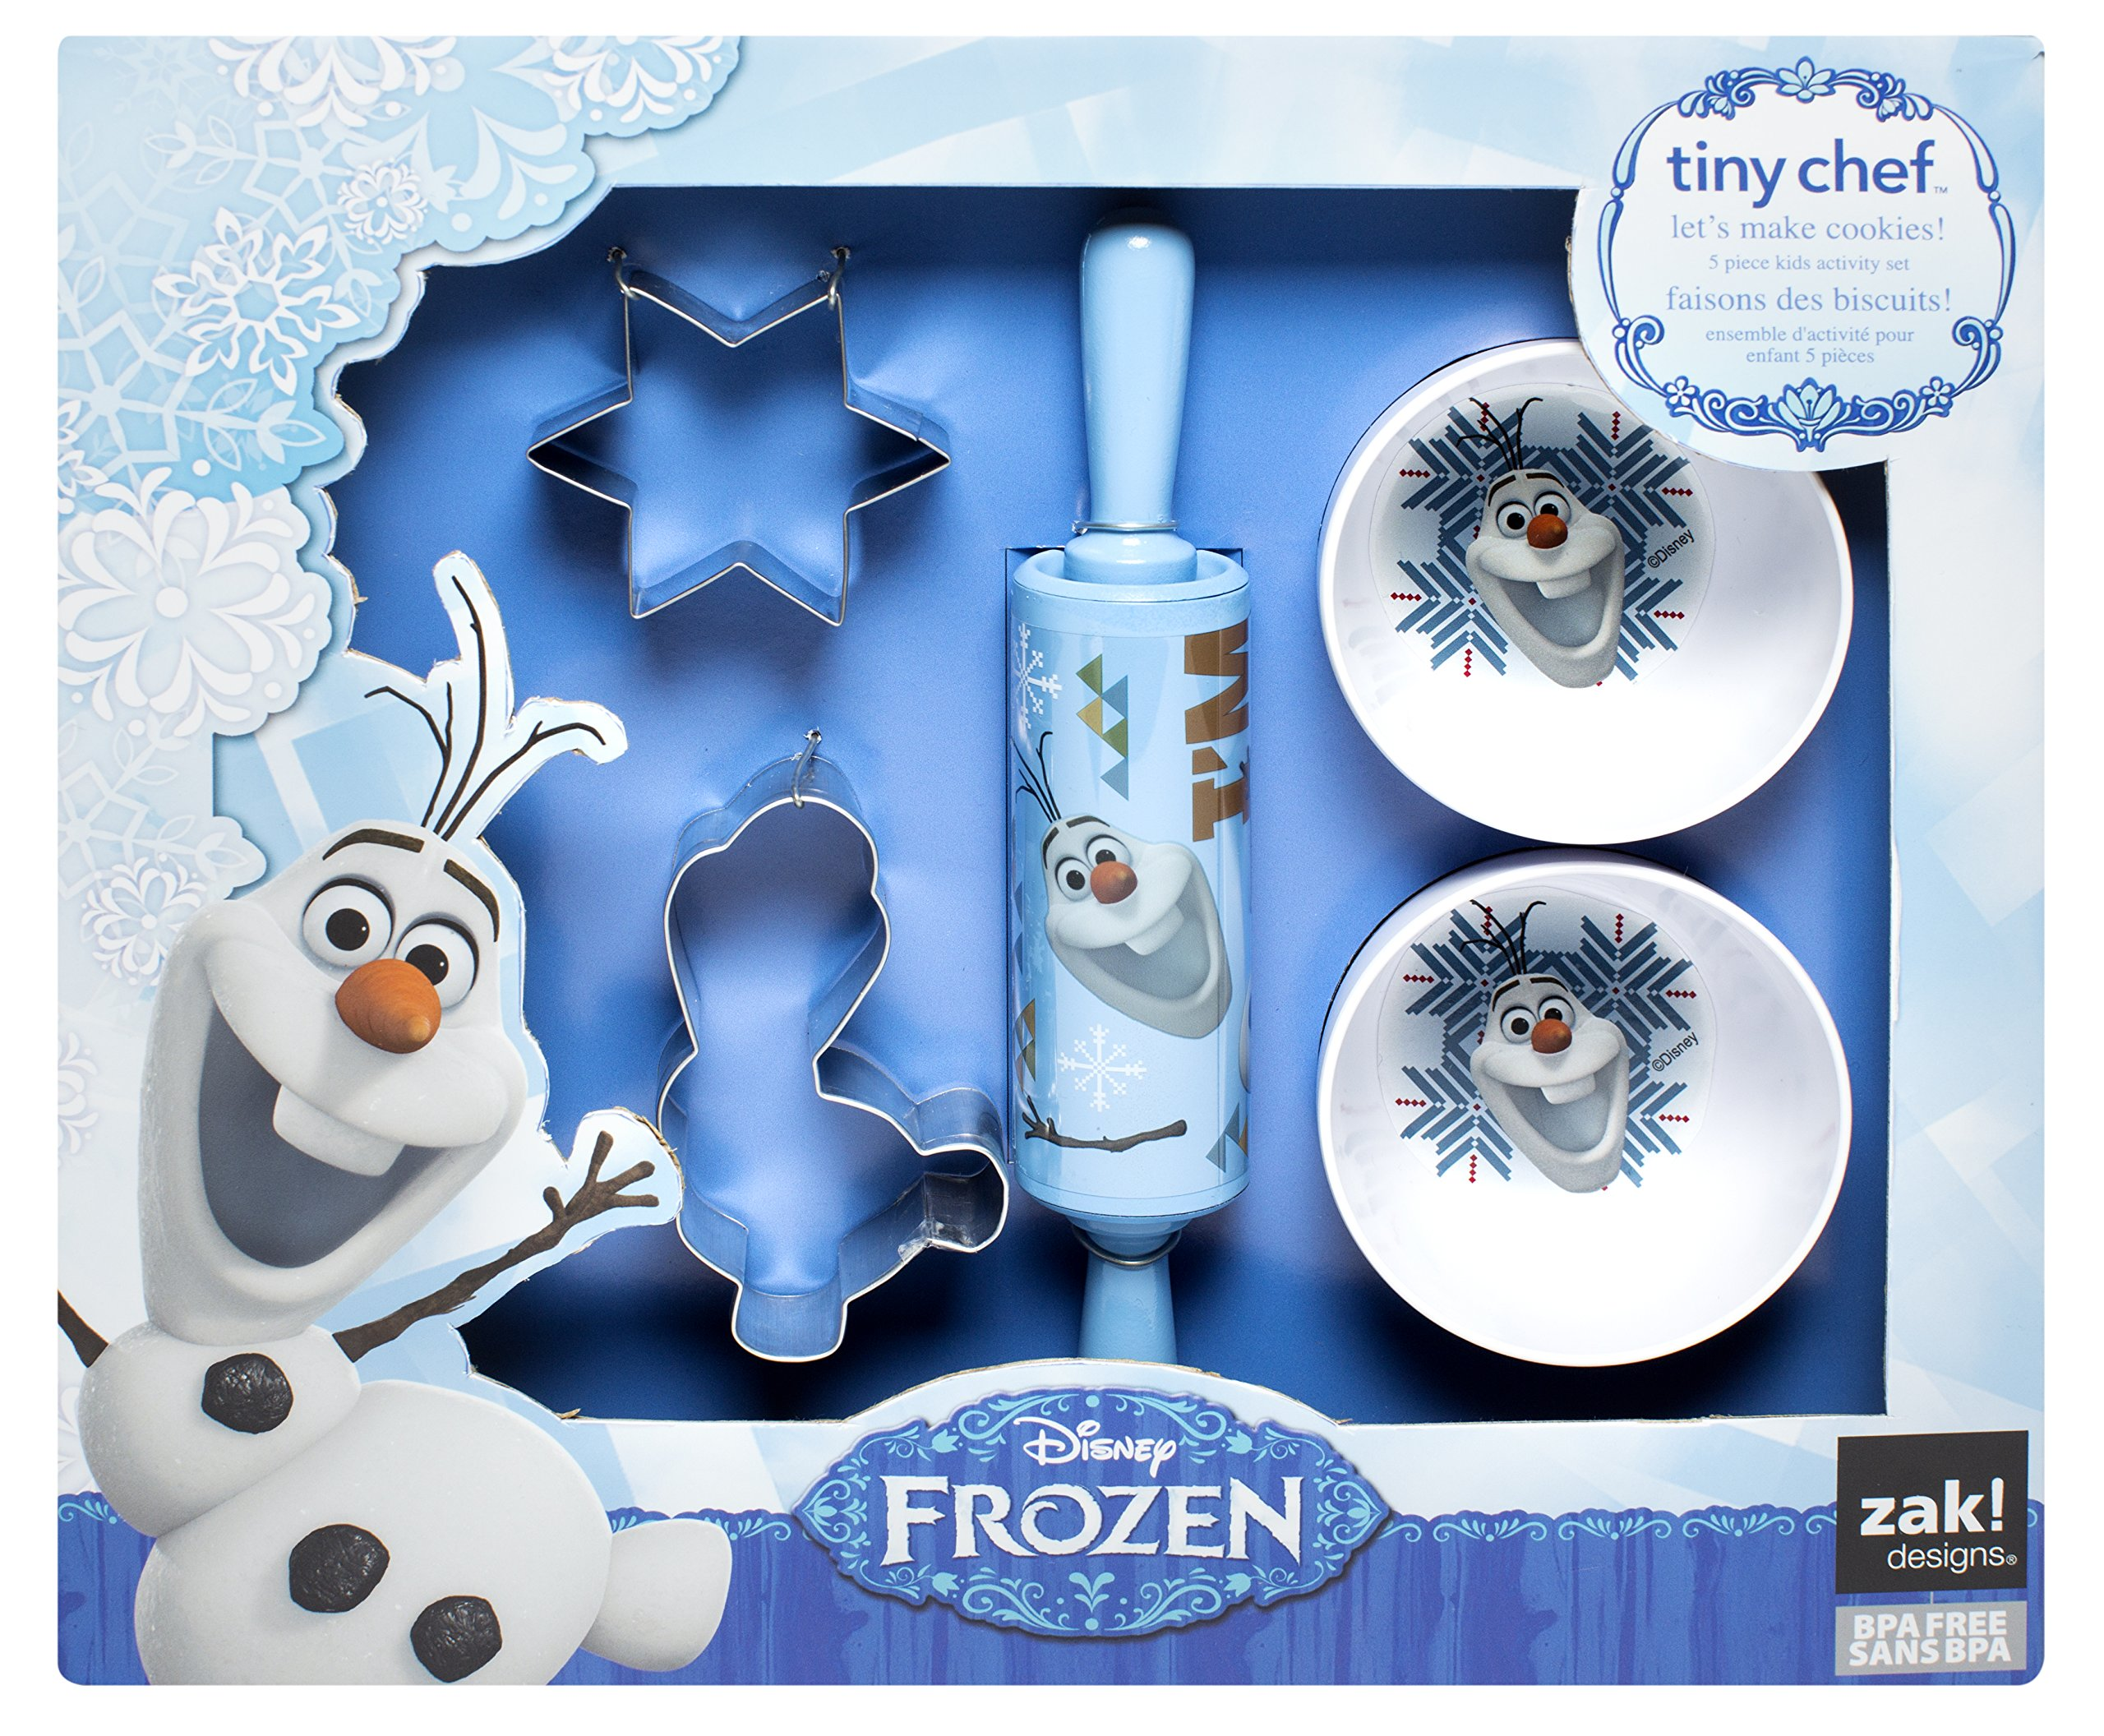 Zak! Designs 5-Piece Tiny Chef Cookie Baking Set with Olaf from Frozen